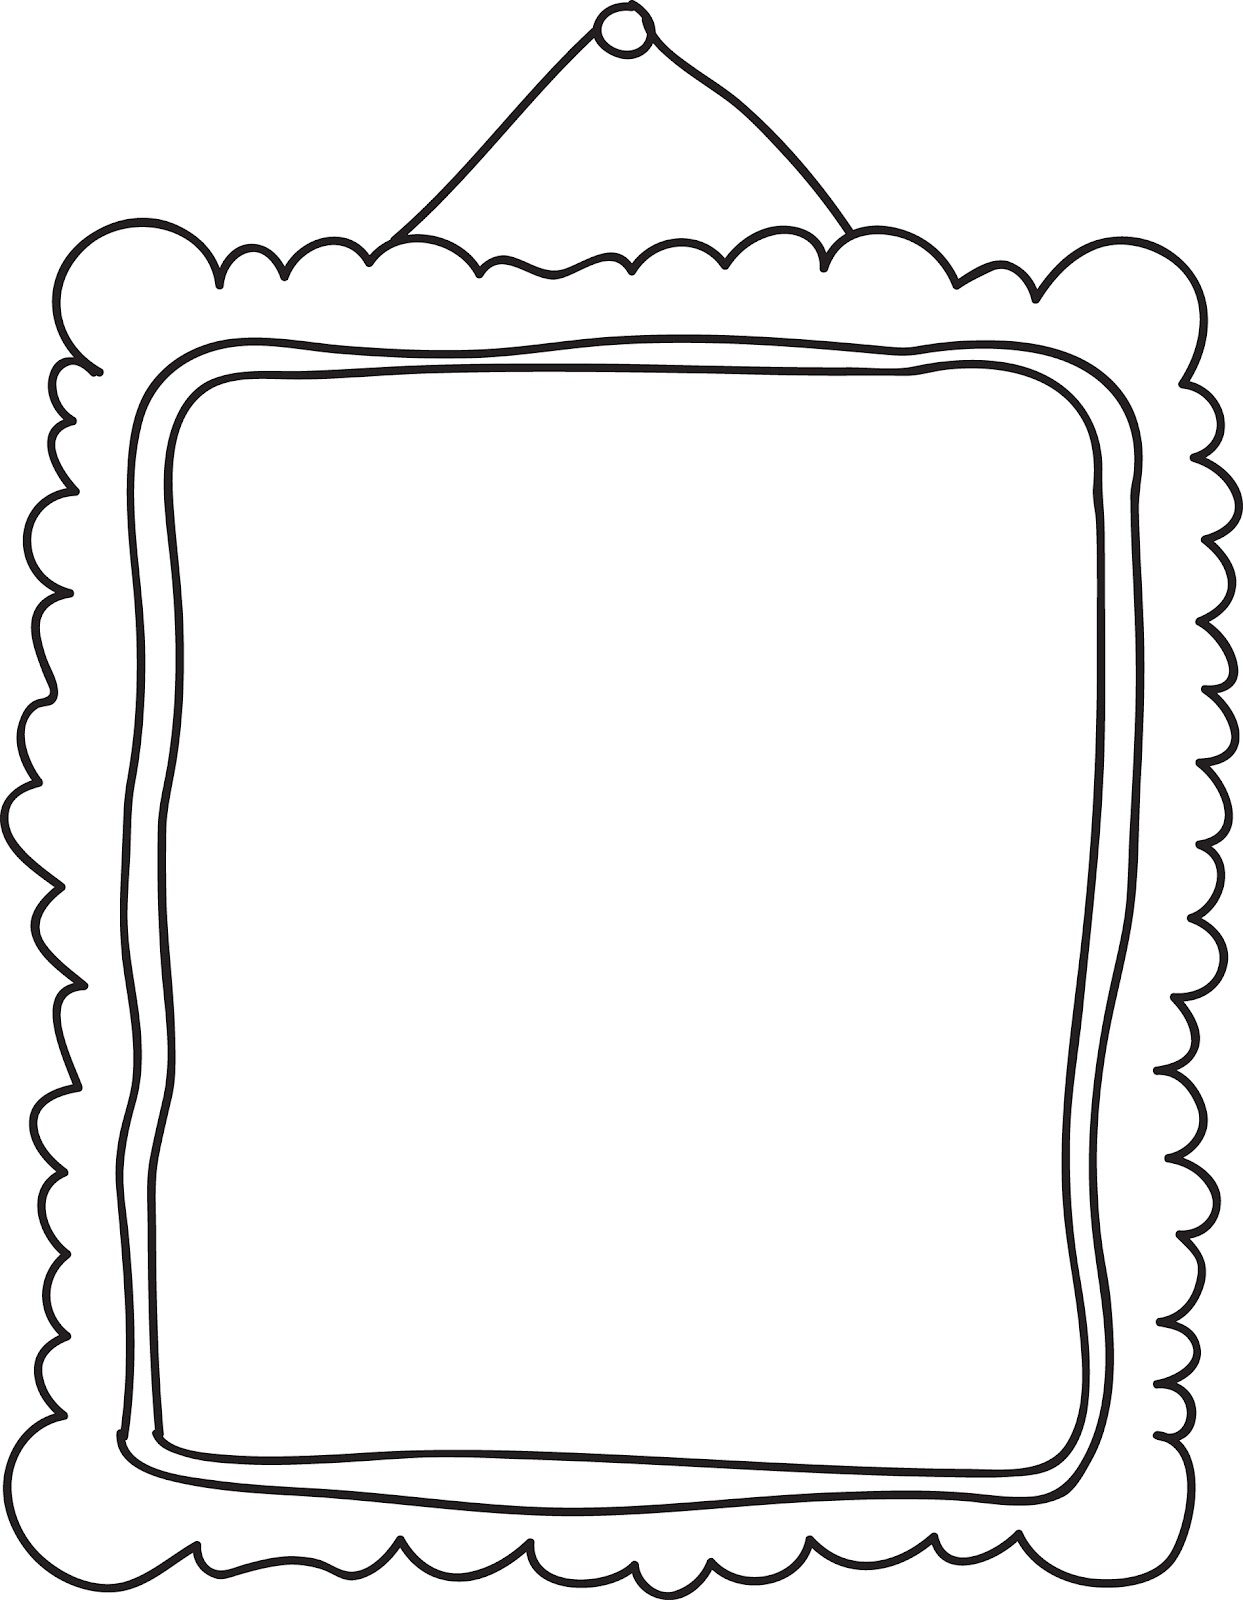 1243x1600 School Page Borders Black And White Borders Clipart